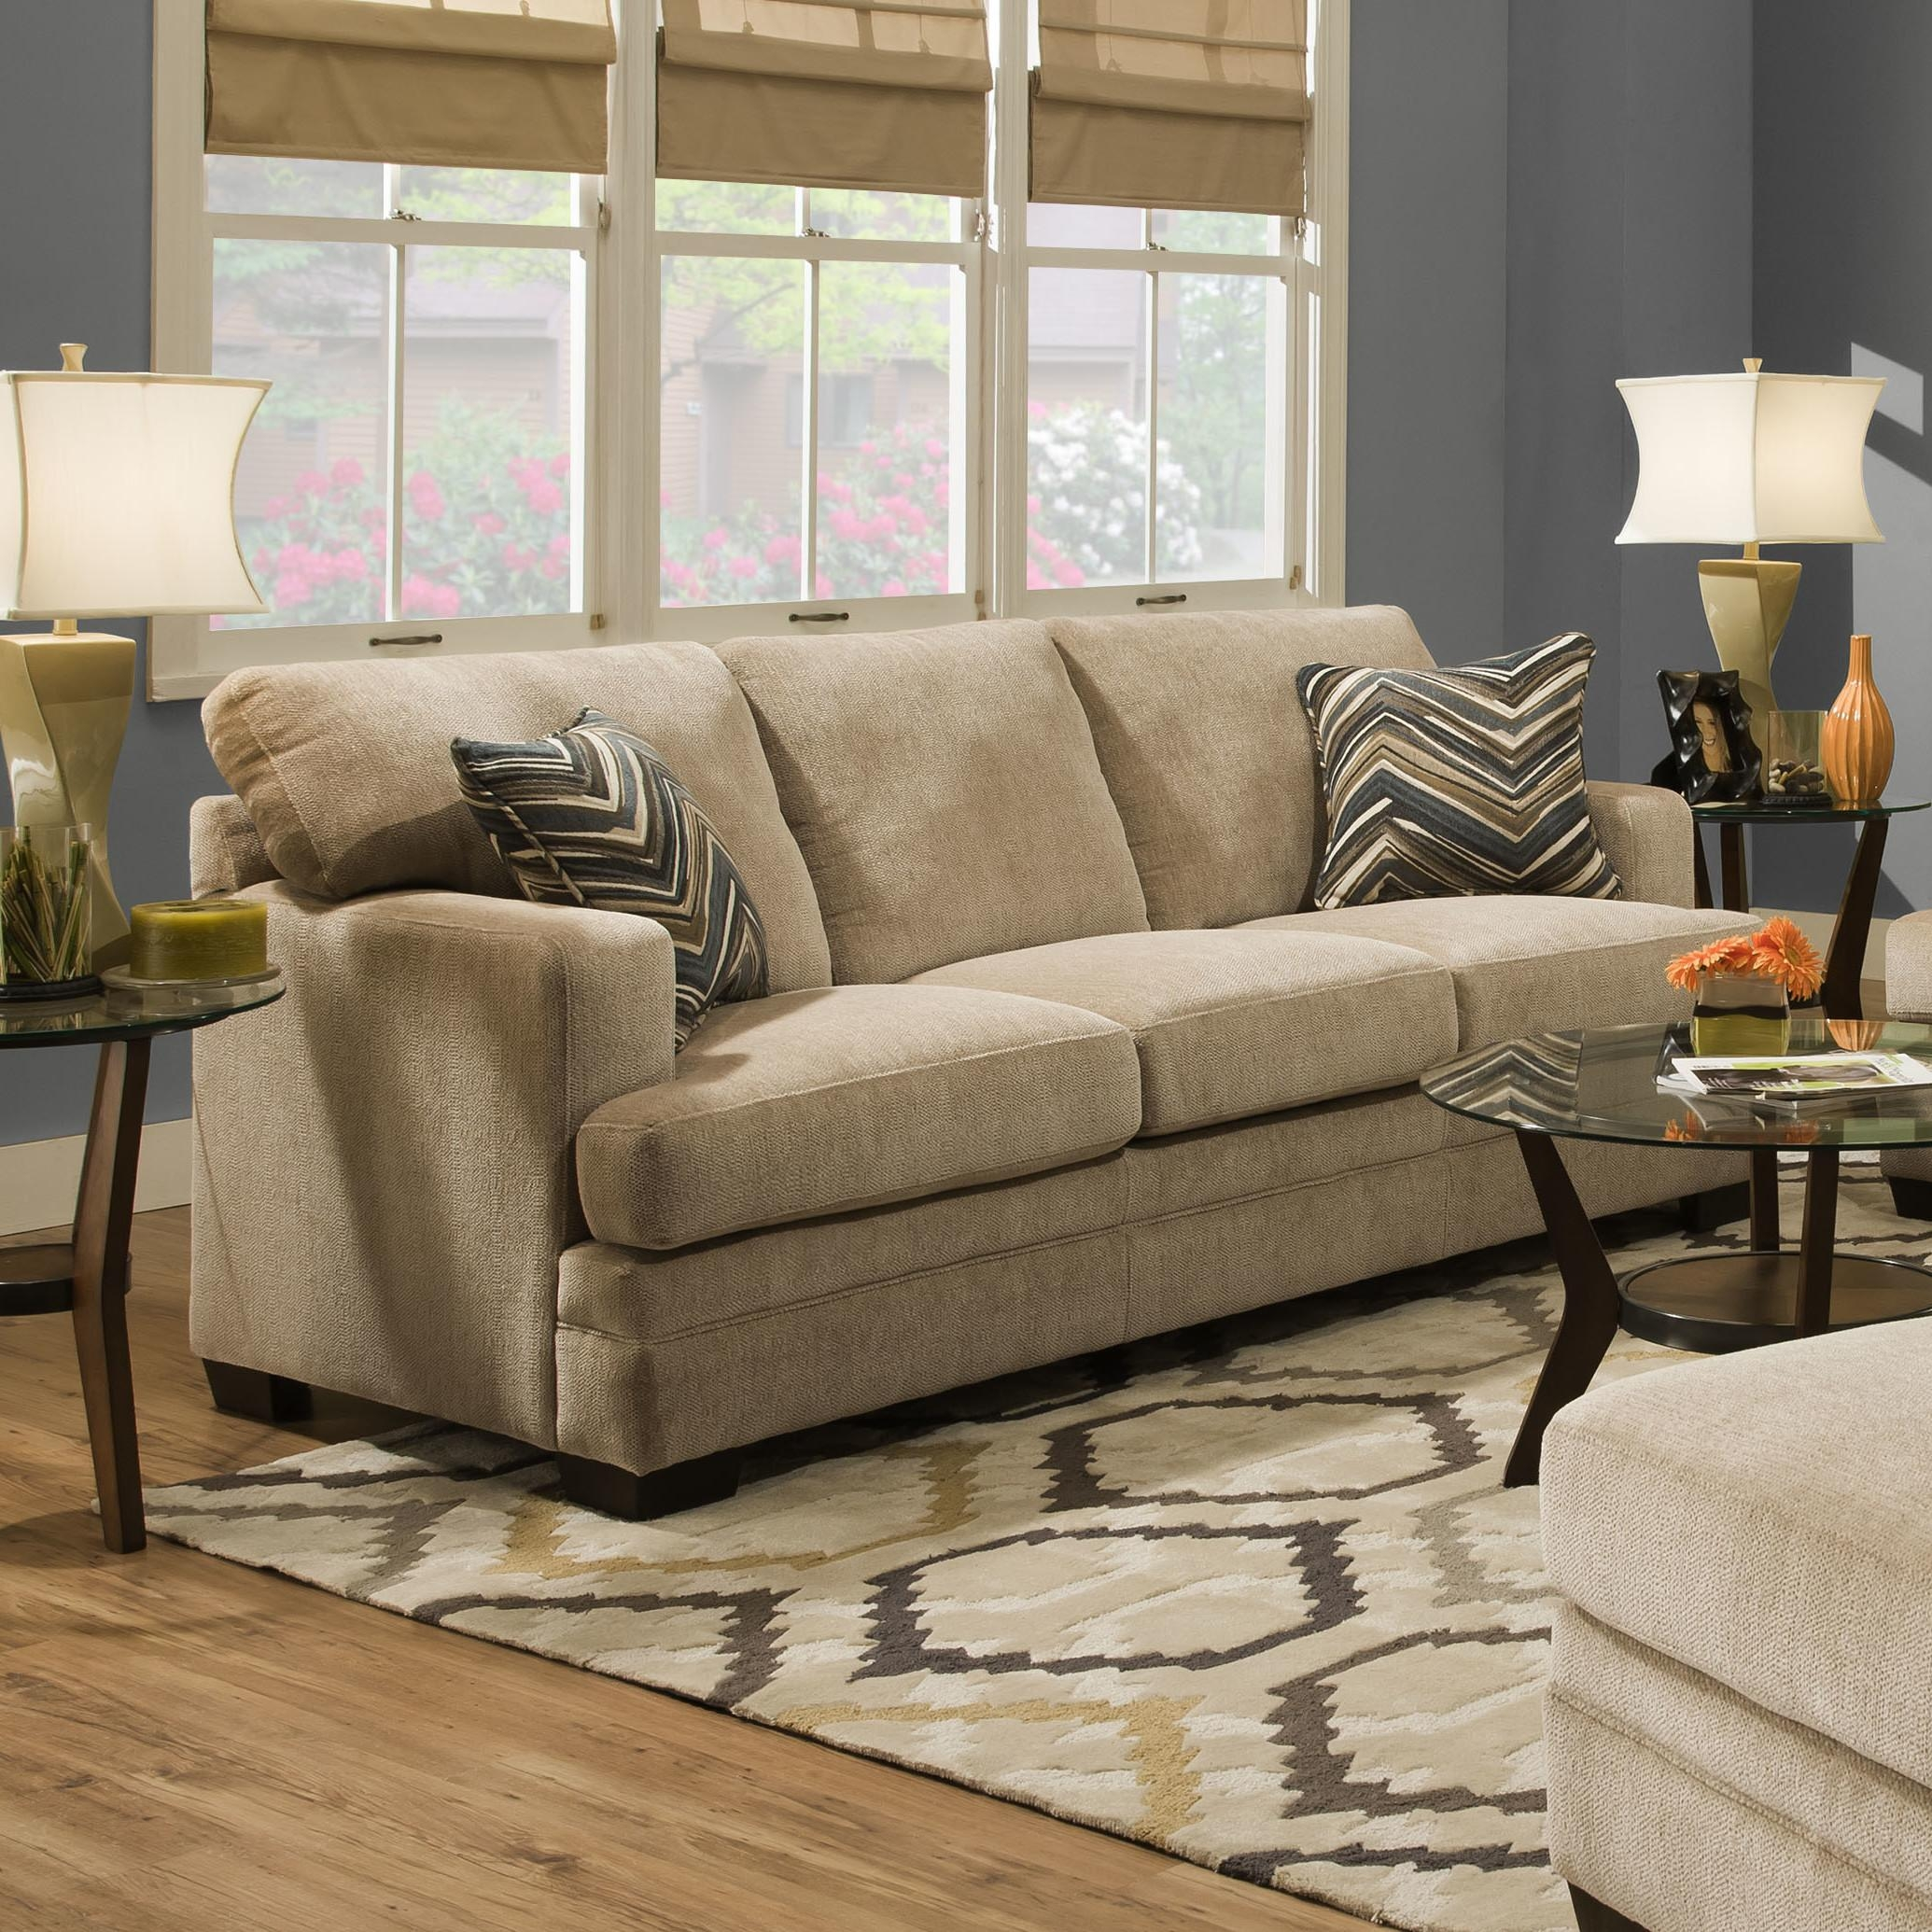 Simmons Microfiber Sofa Reviews Zipcode Design Ackers